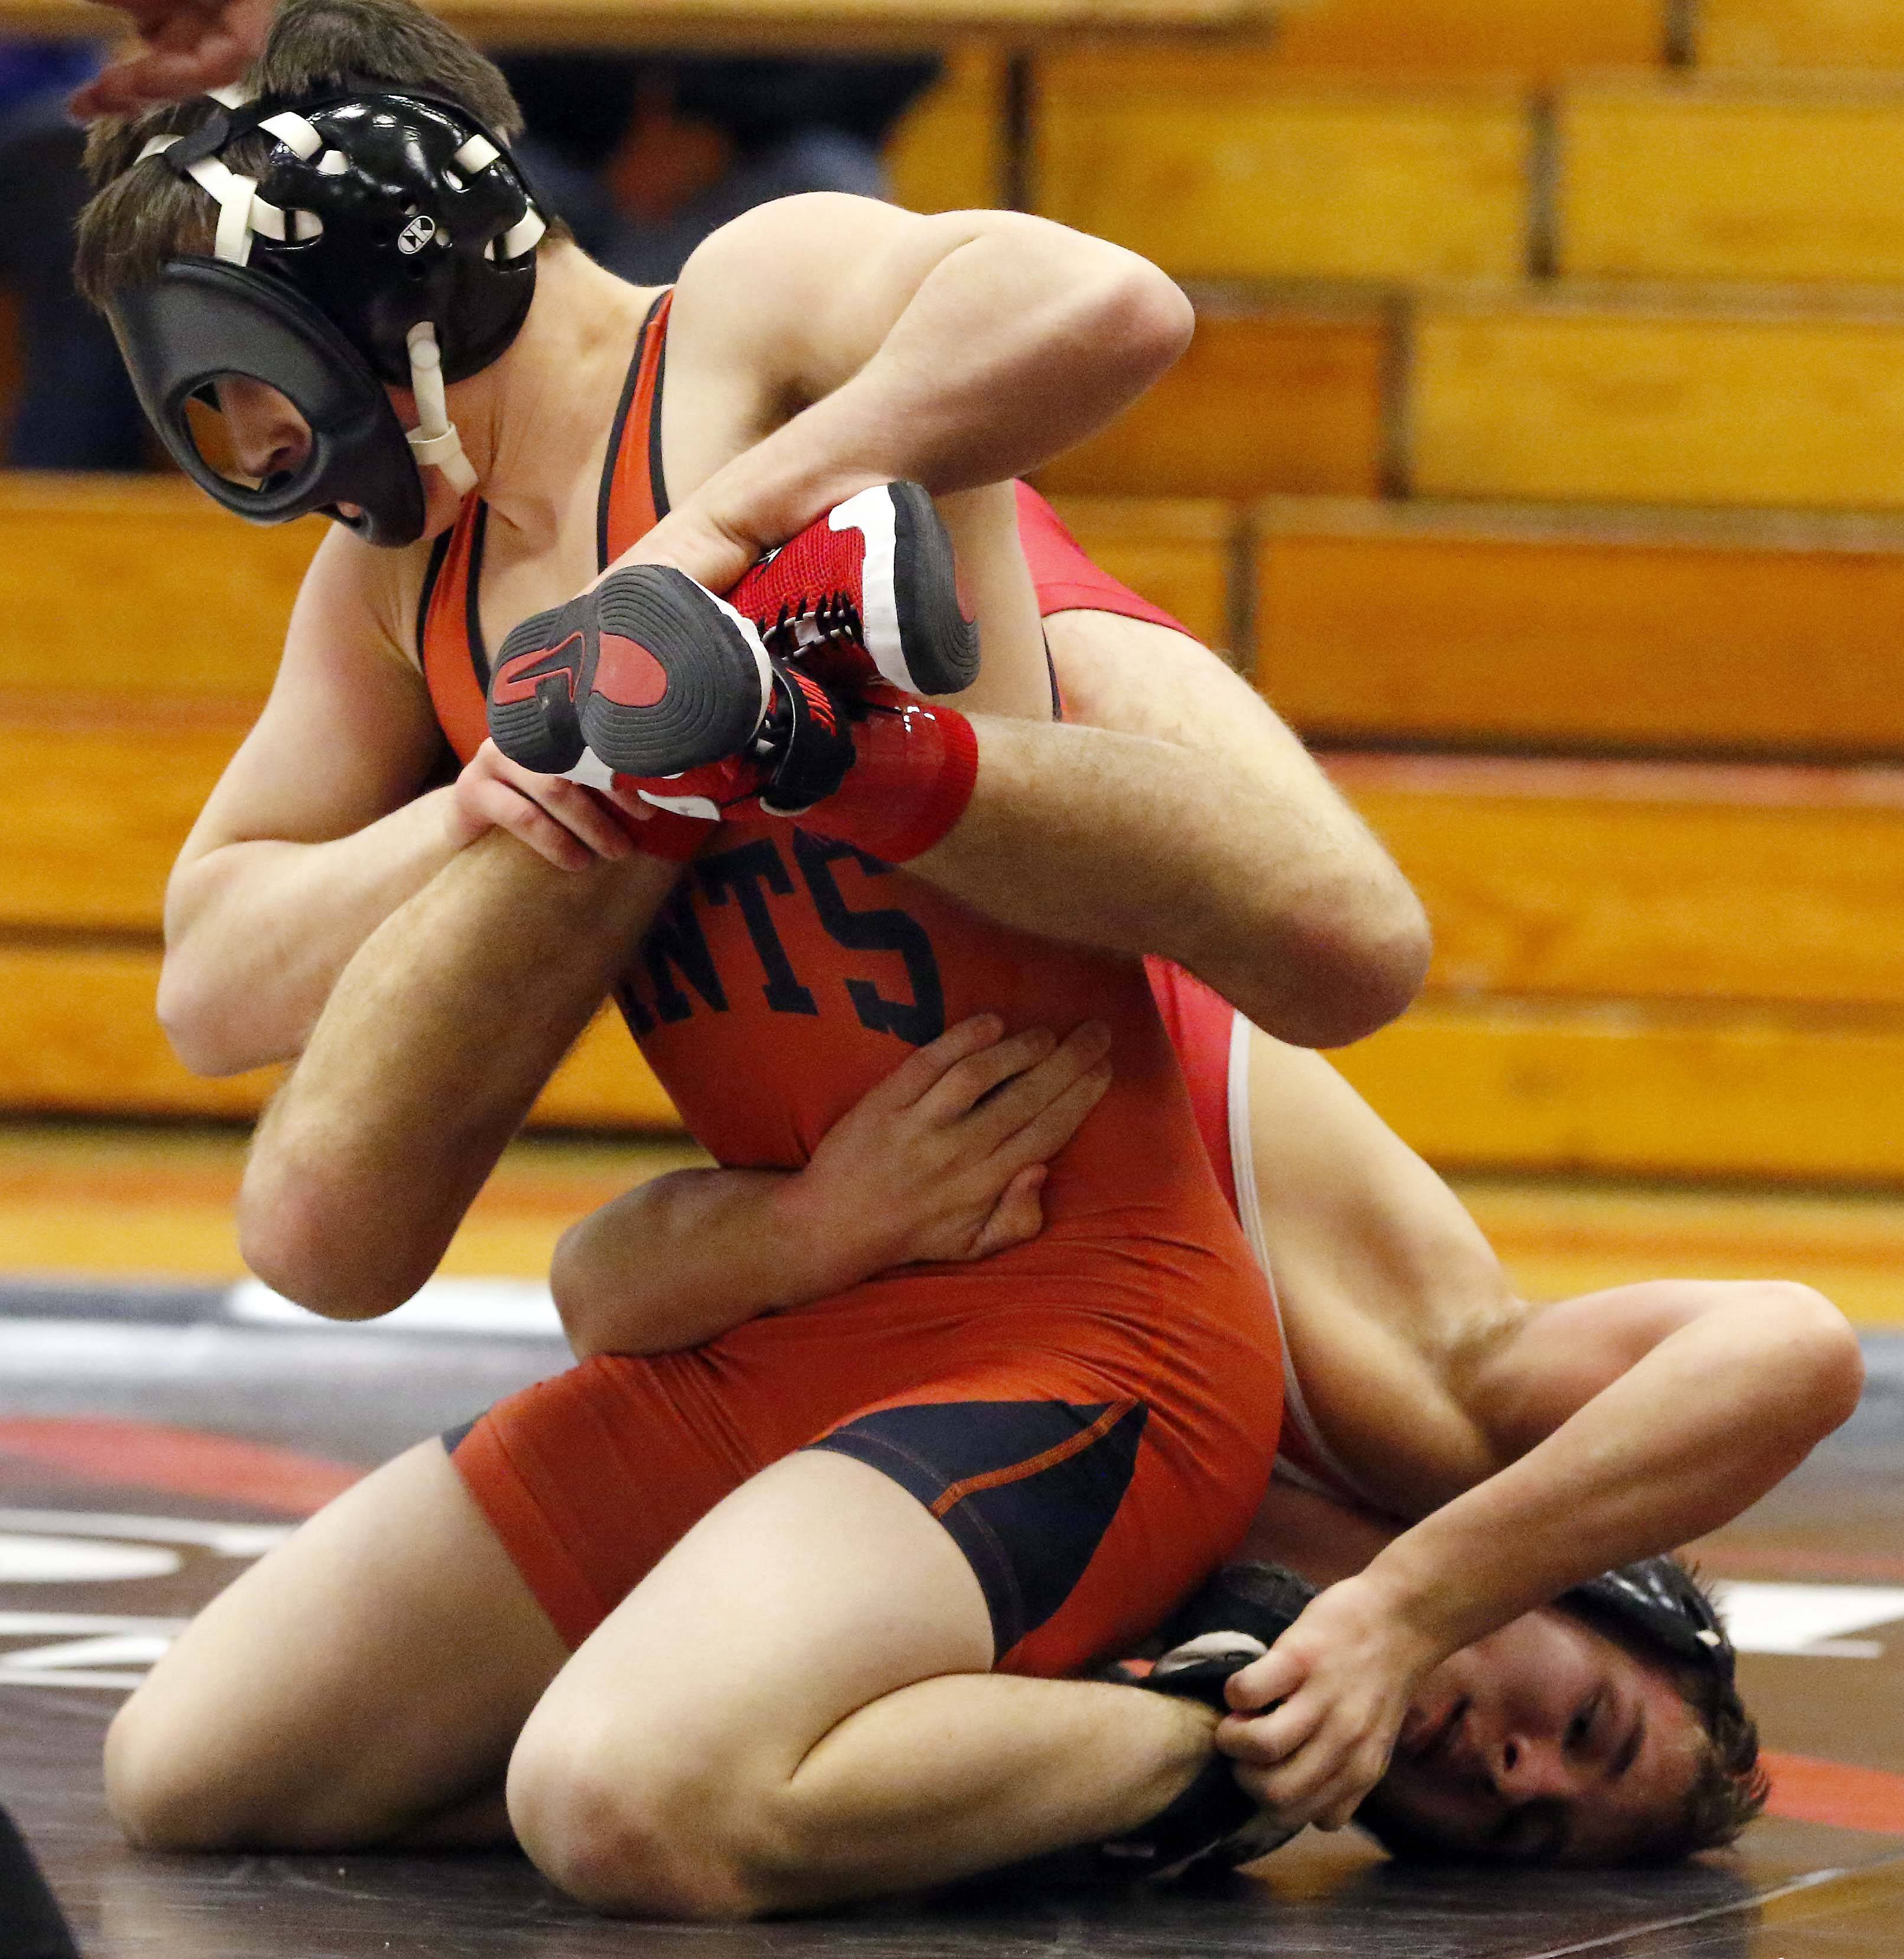 St. Charles East's Ben Anderson wrestles against Glenbard East's Reese Martin at 120 pounds Saturday during the Class 3A Glenbard East wrestling regional in Lombard.